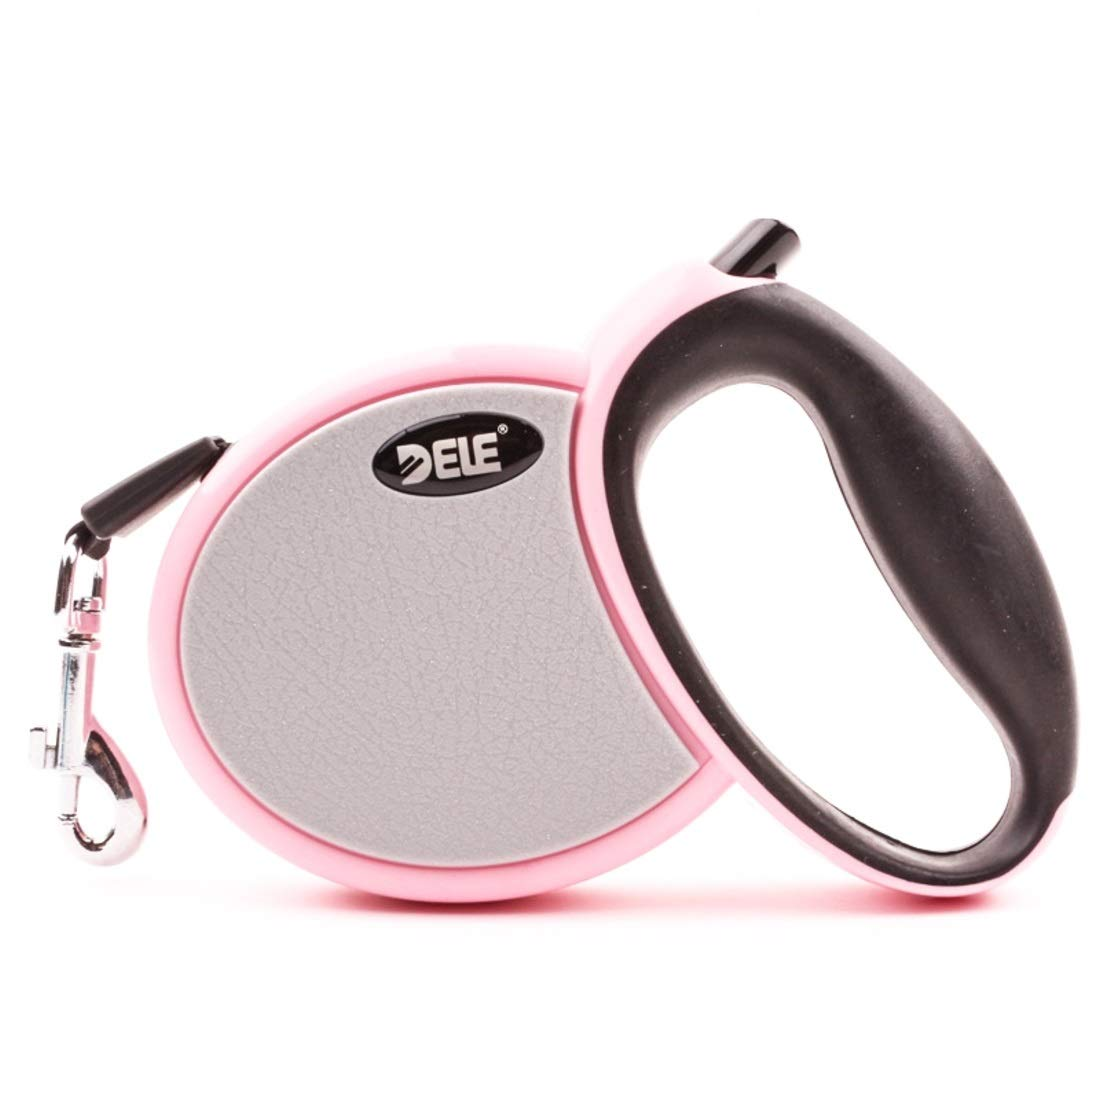 Pink 3M Pink 3M Souliyan Retractable Dog Leash, Walking Jogging Training Leash Tape for Small Medium Dog Hand Grip One Button Brake & Lock (color   Pink, Size   3M)